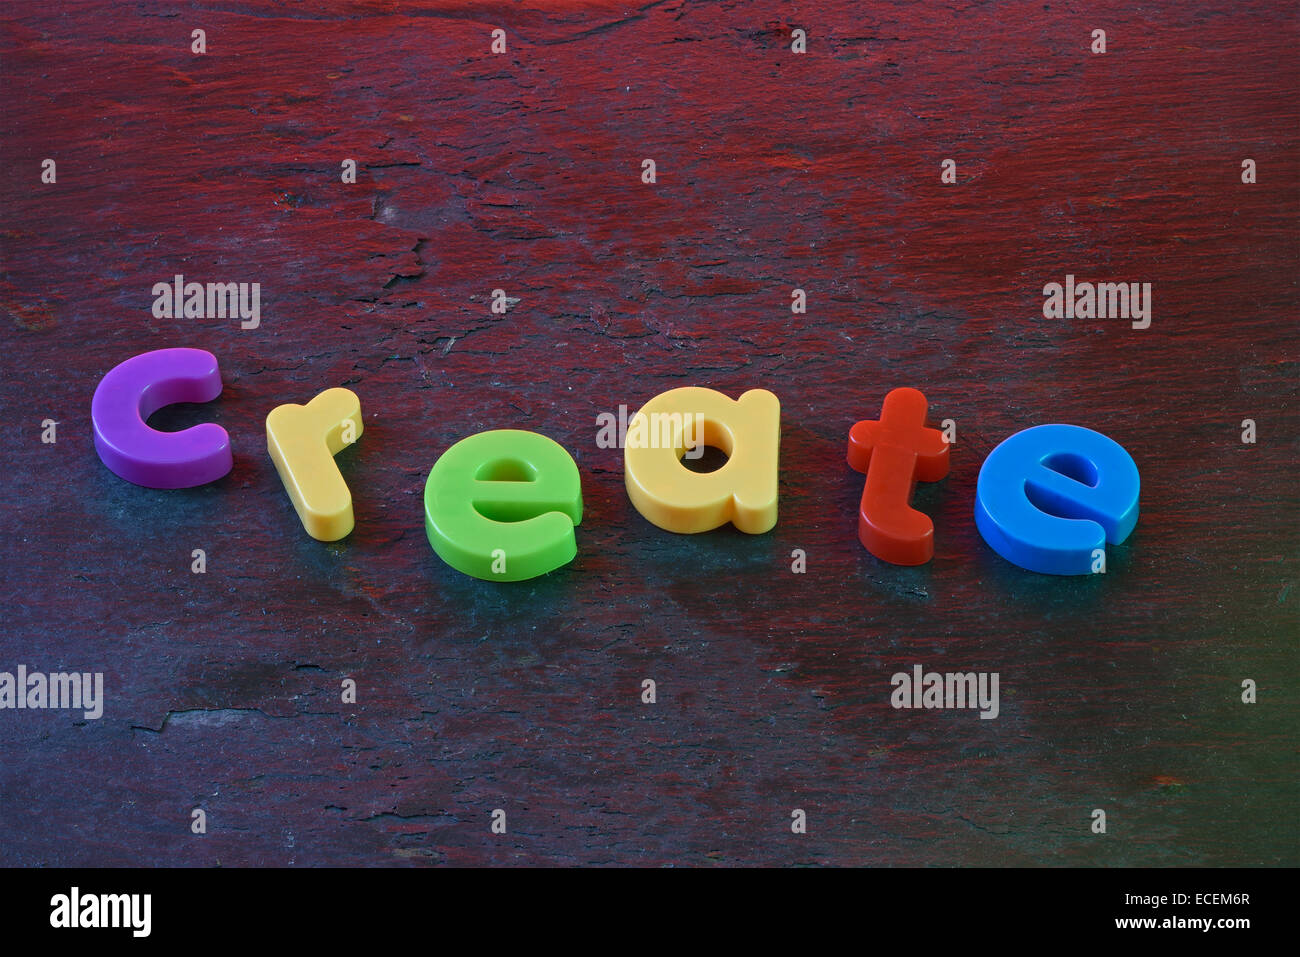 The word 'create,spelled out in colorful fridge magnets on a slate background - Stock Image